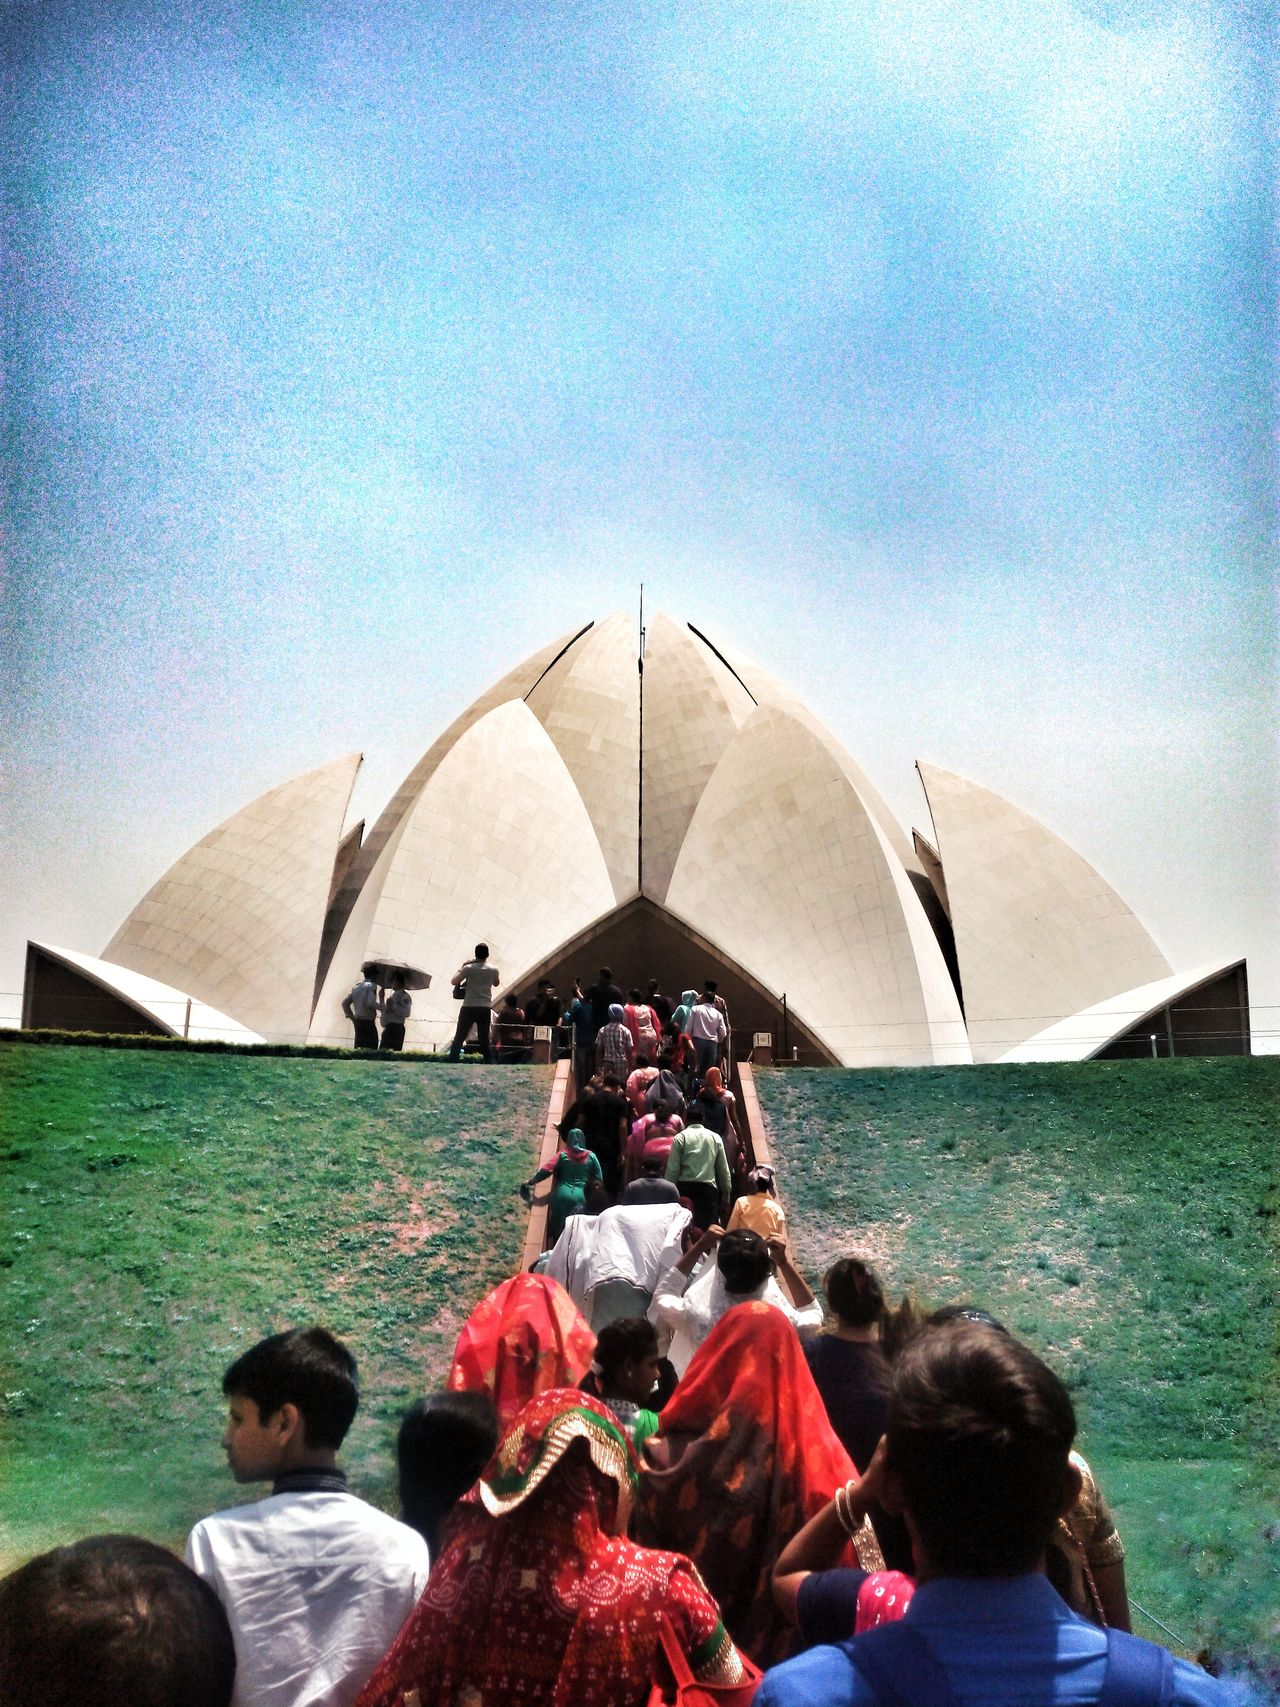 It's a Lotus Temple located at New Delhi, India. It's actually a church built in 90th century. It is the place where you can find peace in your heart. Real People Outdoors Women Adult Sky People Day Incridibleindia Overview Artofvisuals Exolore Your City India The Great Outdoors - 2017 EyeEm Awards EyeEmNewHere Architecture The Photojournalist - 2017 EyeEm Awards The Architect - 2017 EyeEm Awards Built Structure Visualsoflife Symmetry_seekers Place Of Worship Spirituality Live For The Story Let's Go. Together.